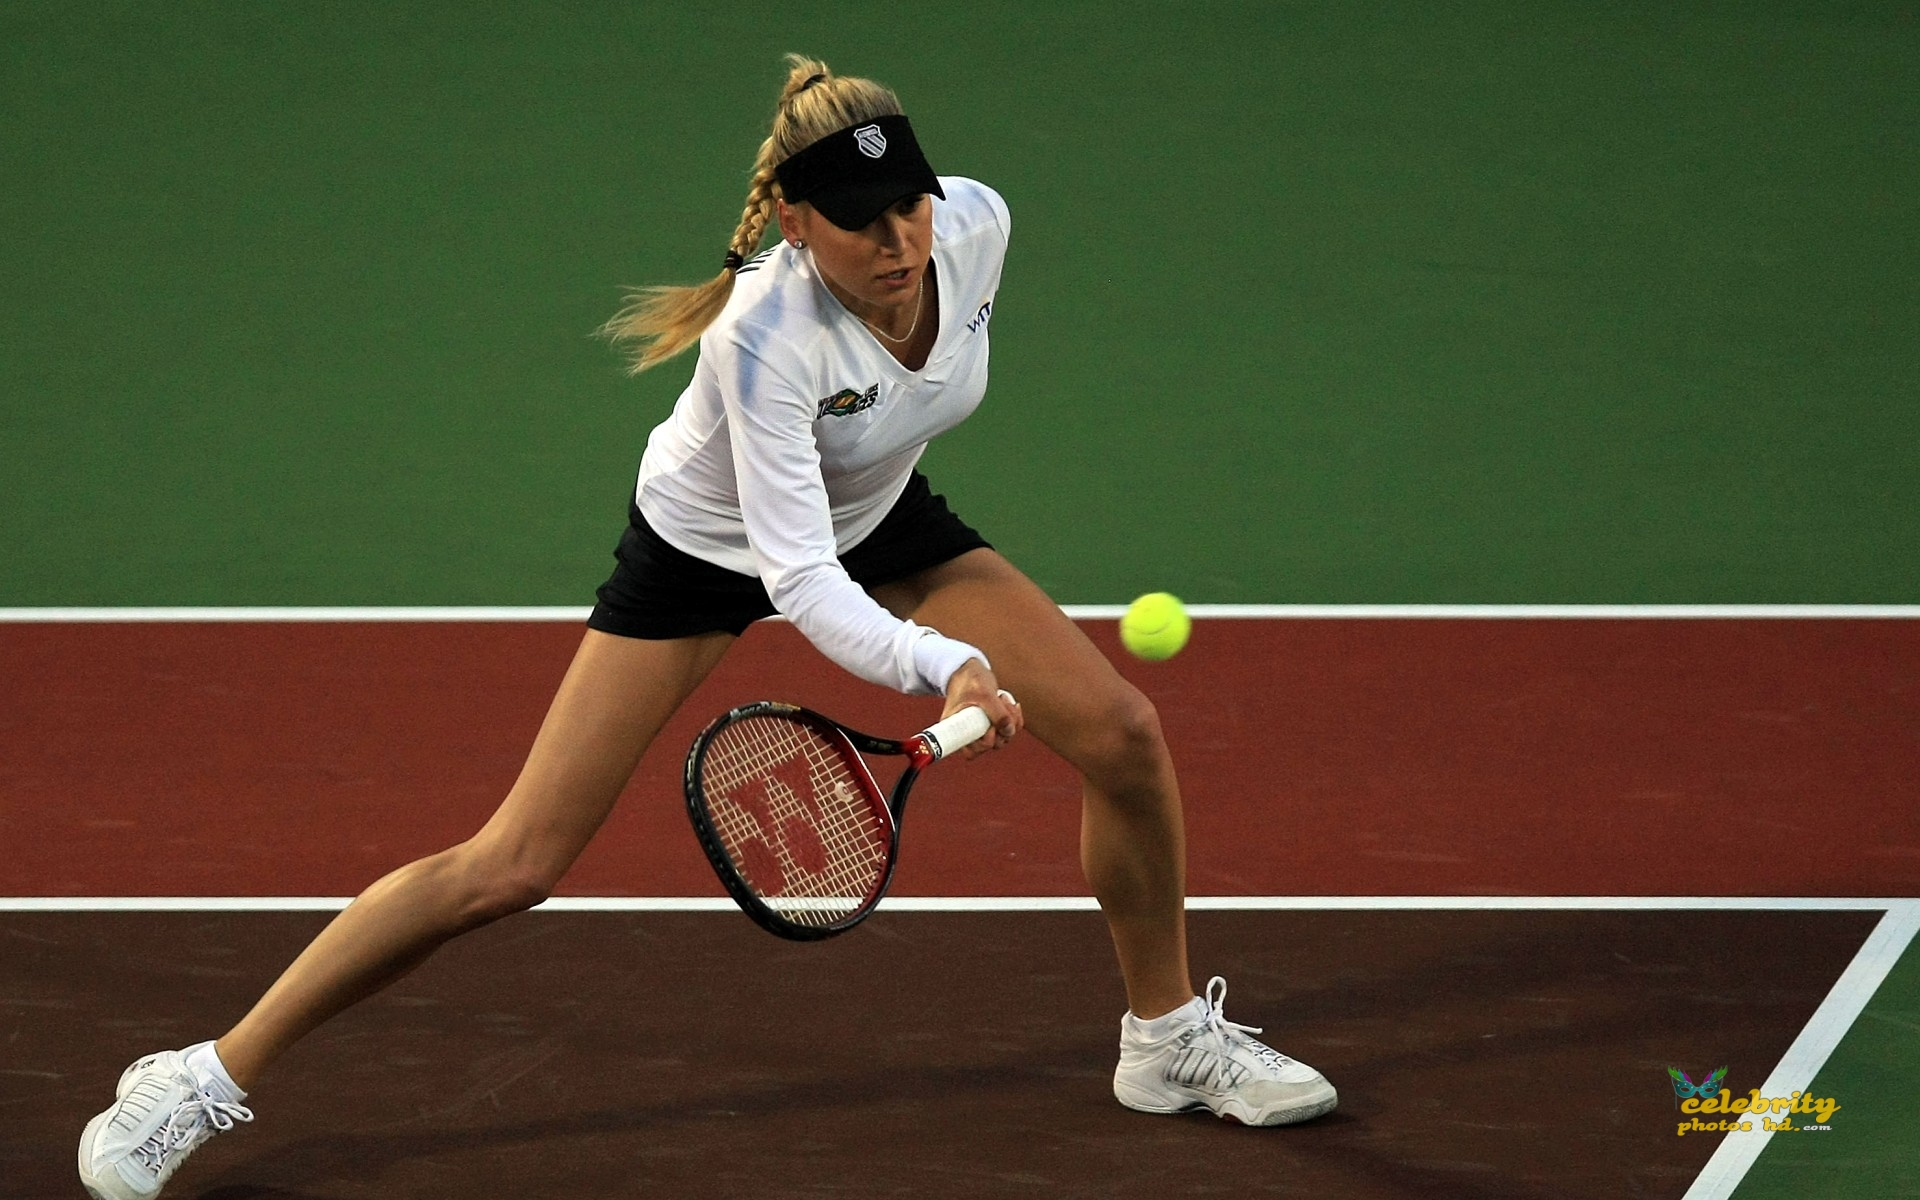 anna-kournikova-on-court